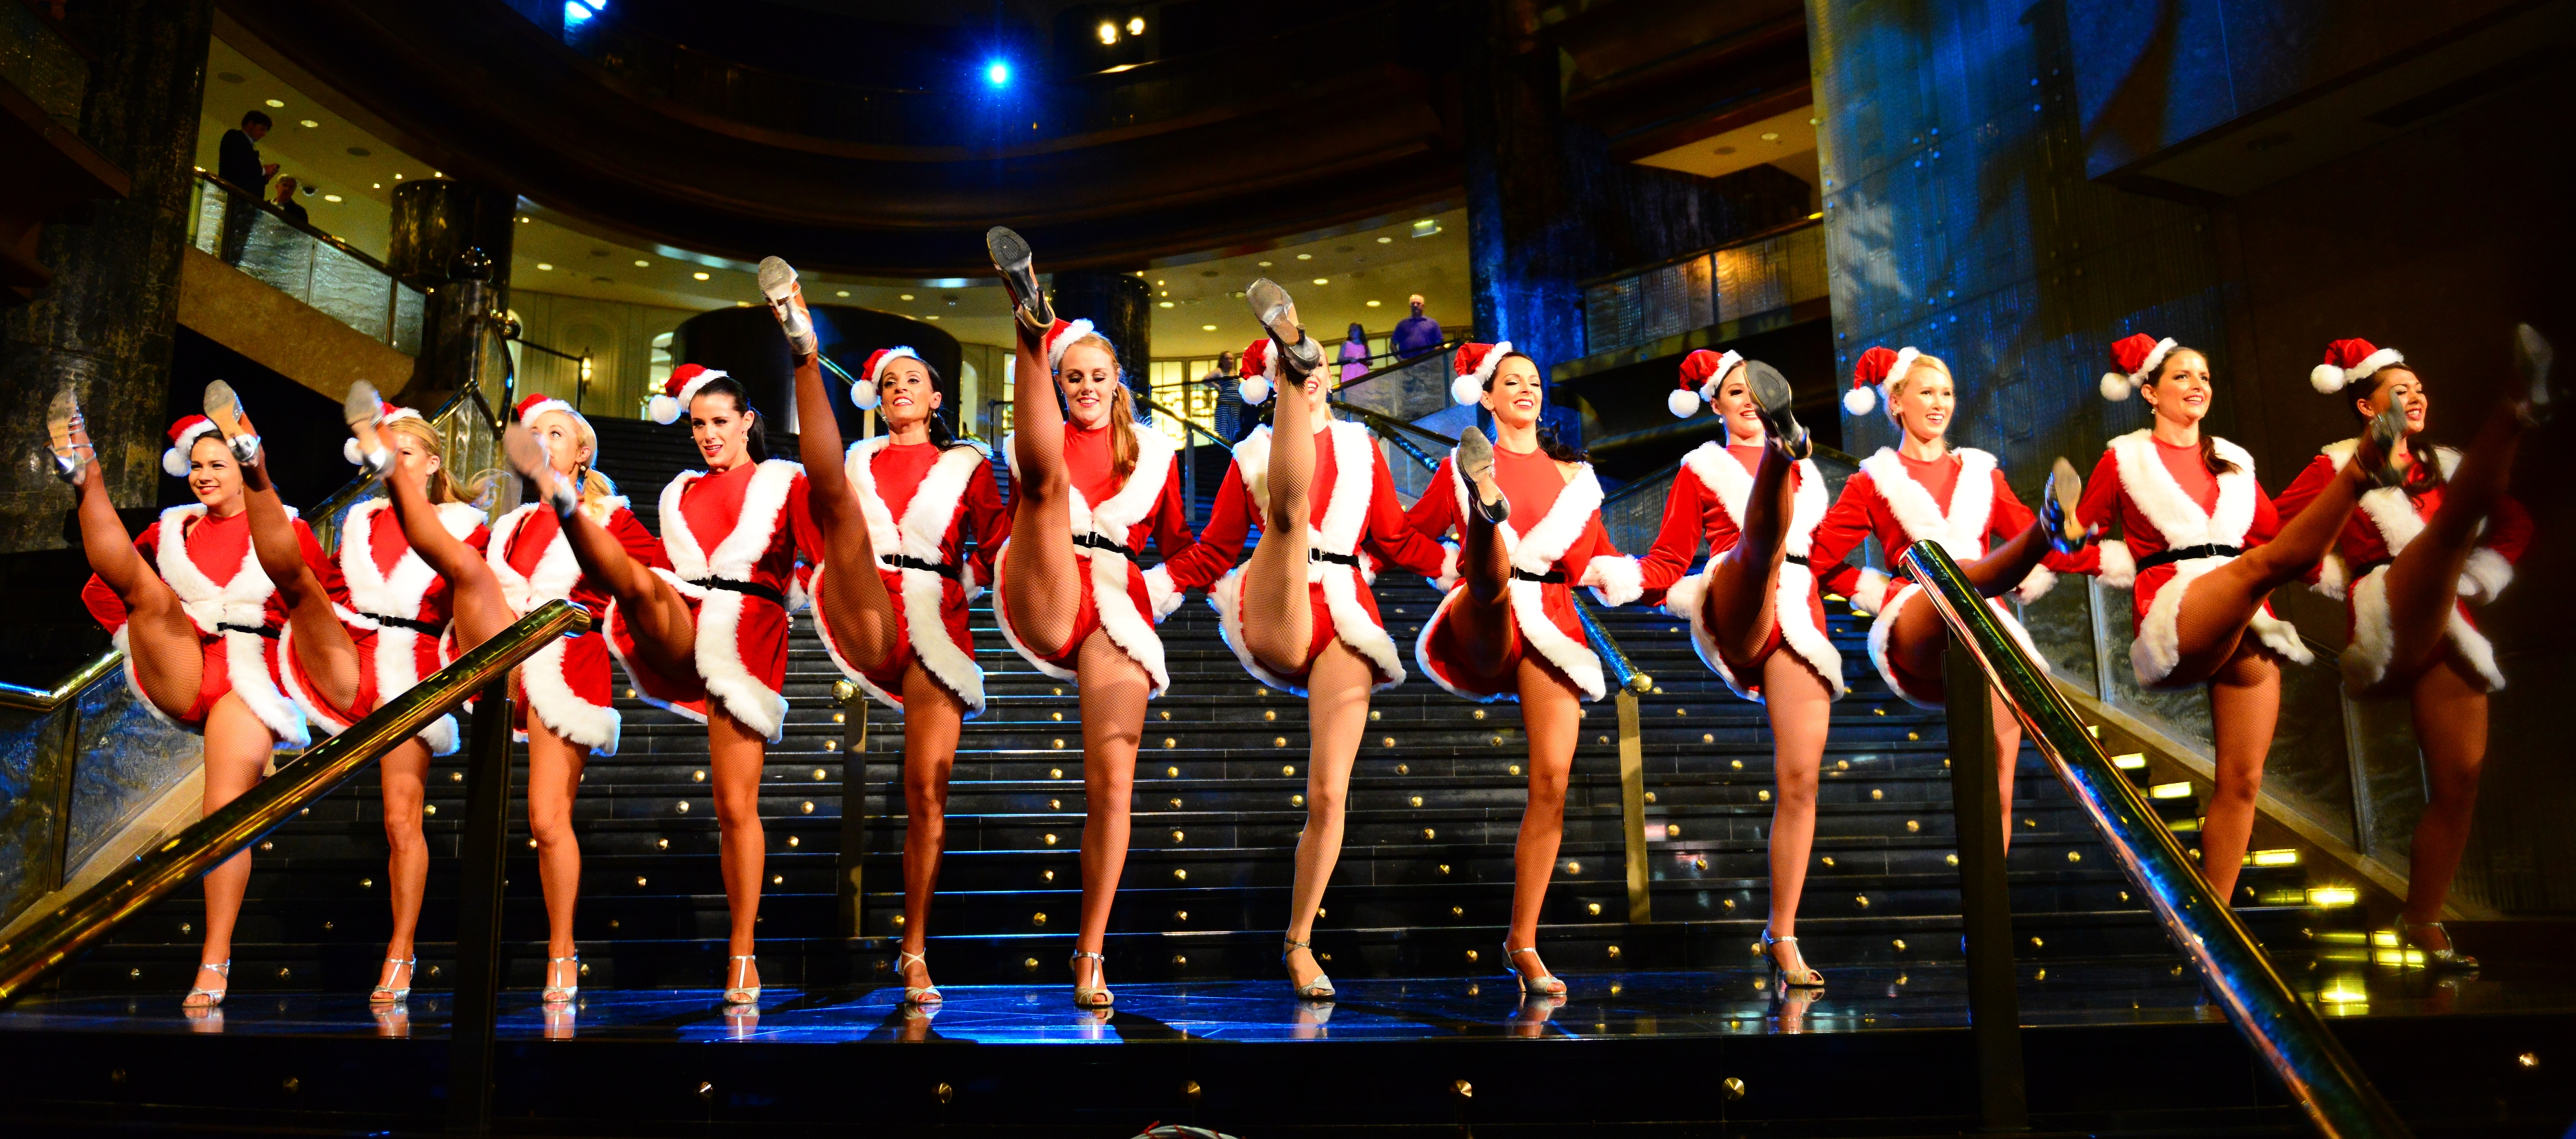 Christmas_Belles_at_Crown_-_11366677816